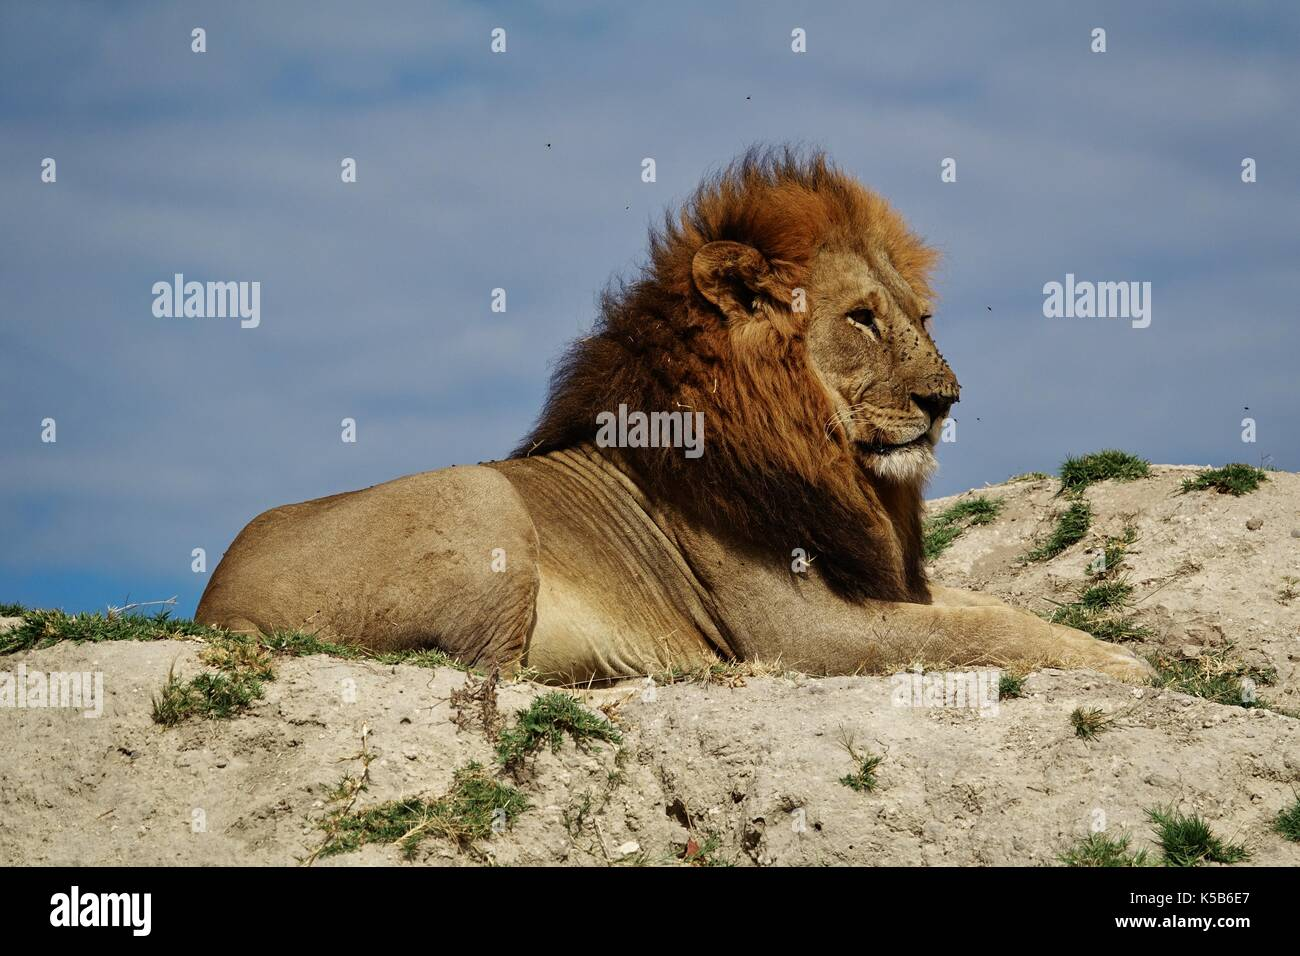 Grand mâle lion assis sur la colline parlementaire Photo Stock